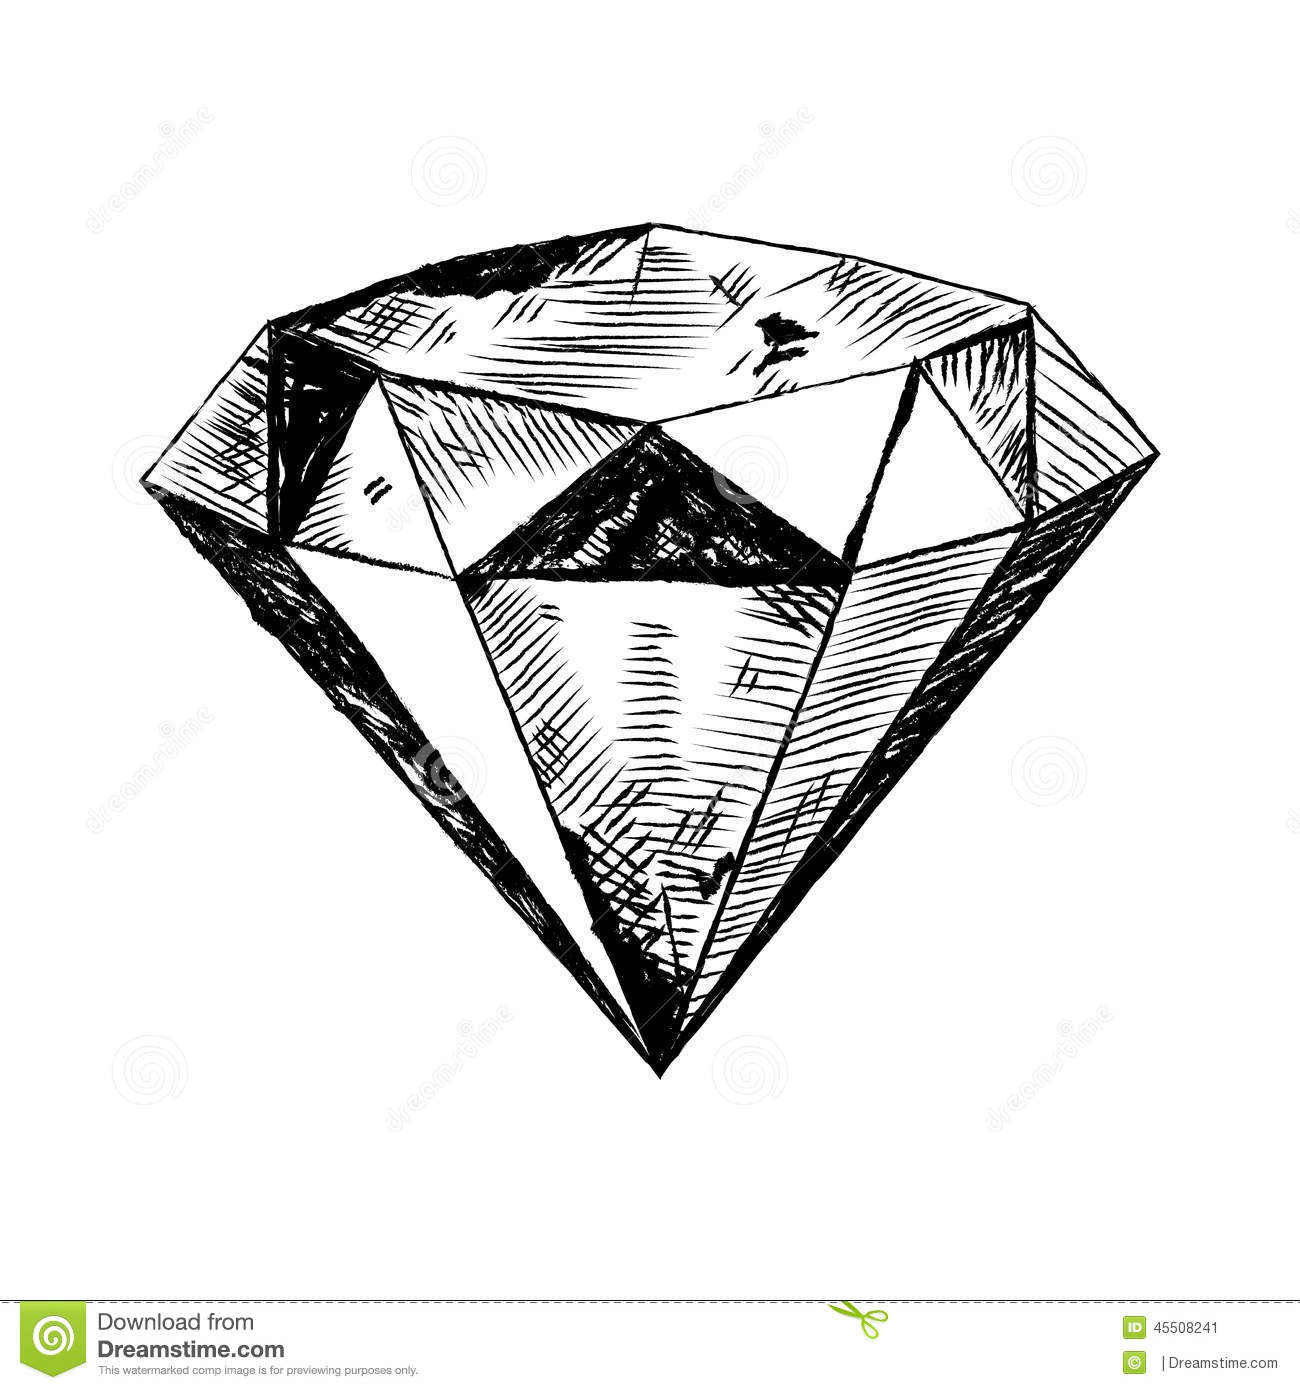 Diamonds in the rough clipart freeuse download 7+ Fantastic Rough Diamond Sketch Drawing Gallery - Sketch - SKETCH ARTS freeuse download